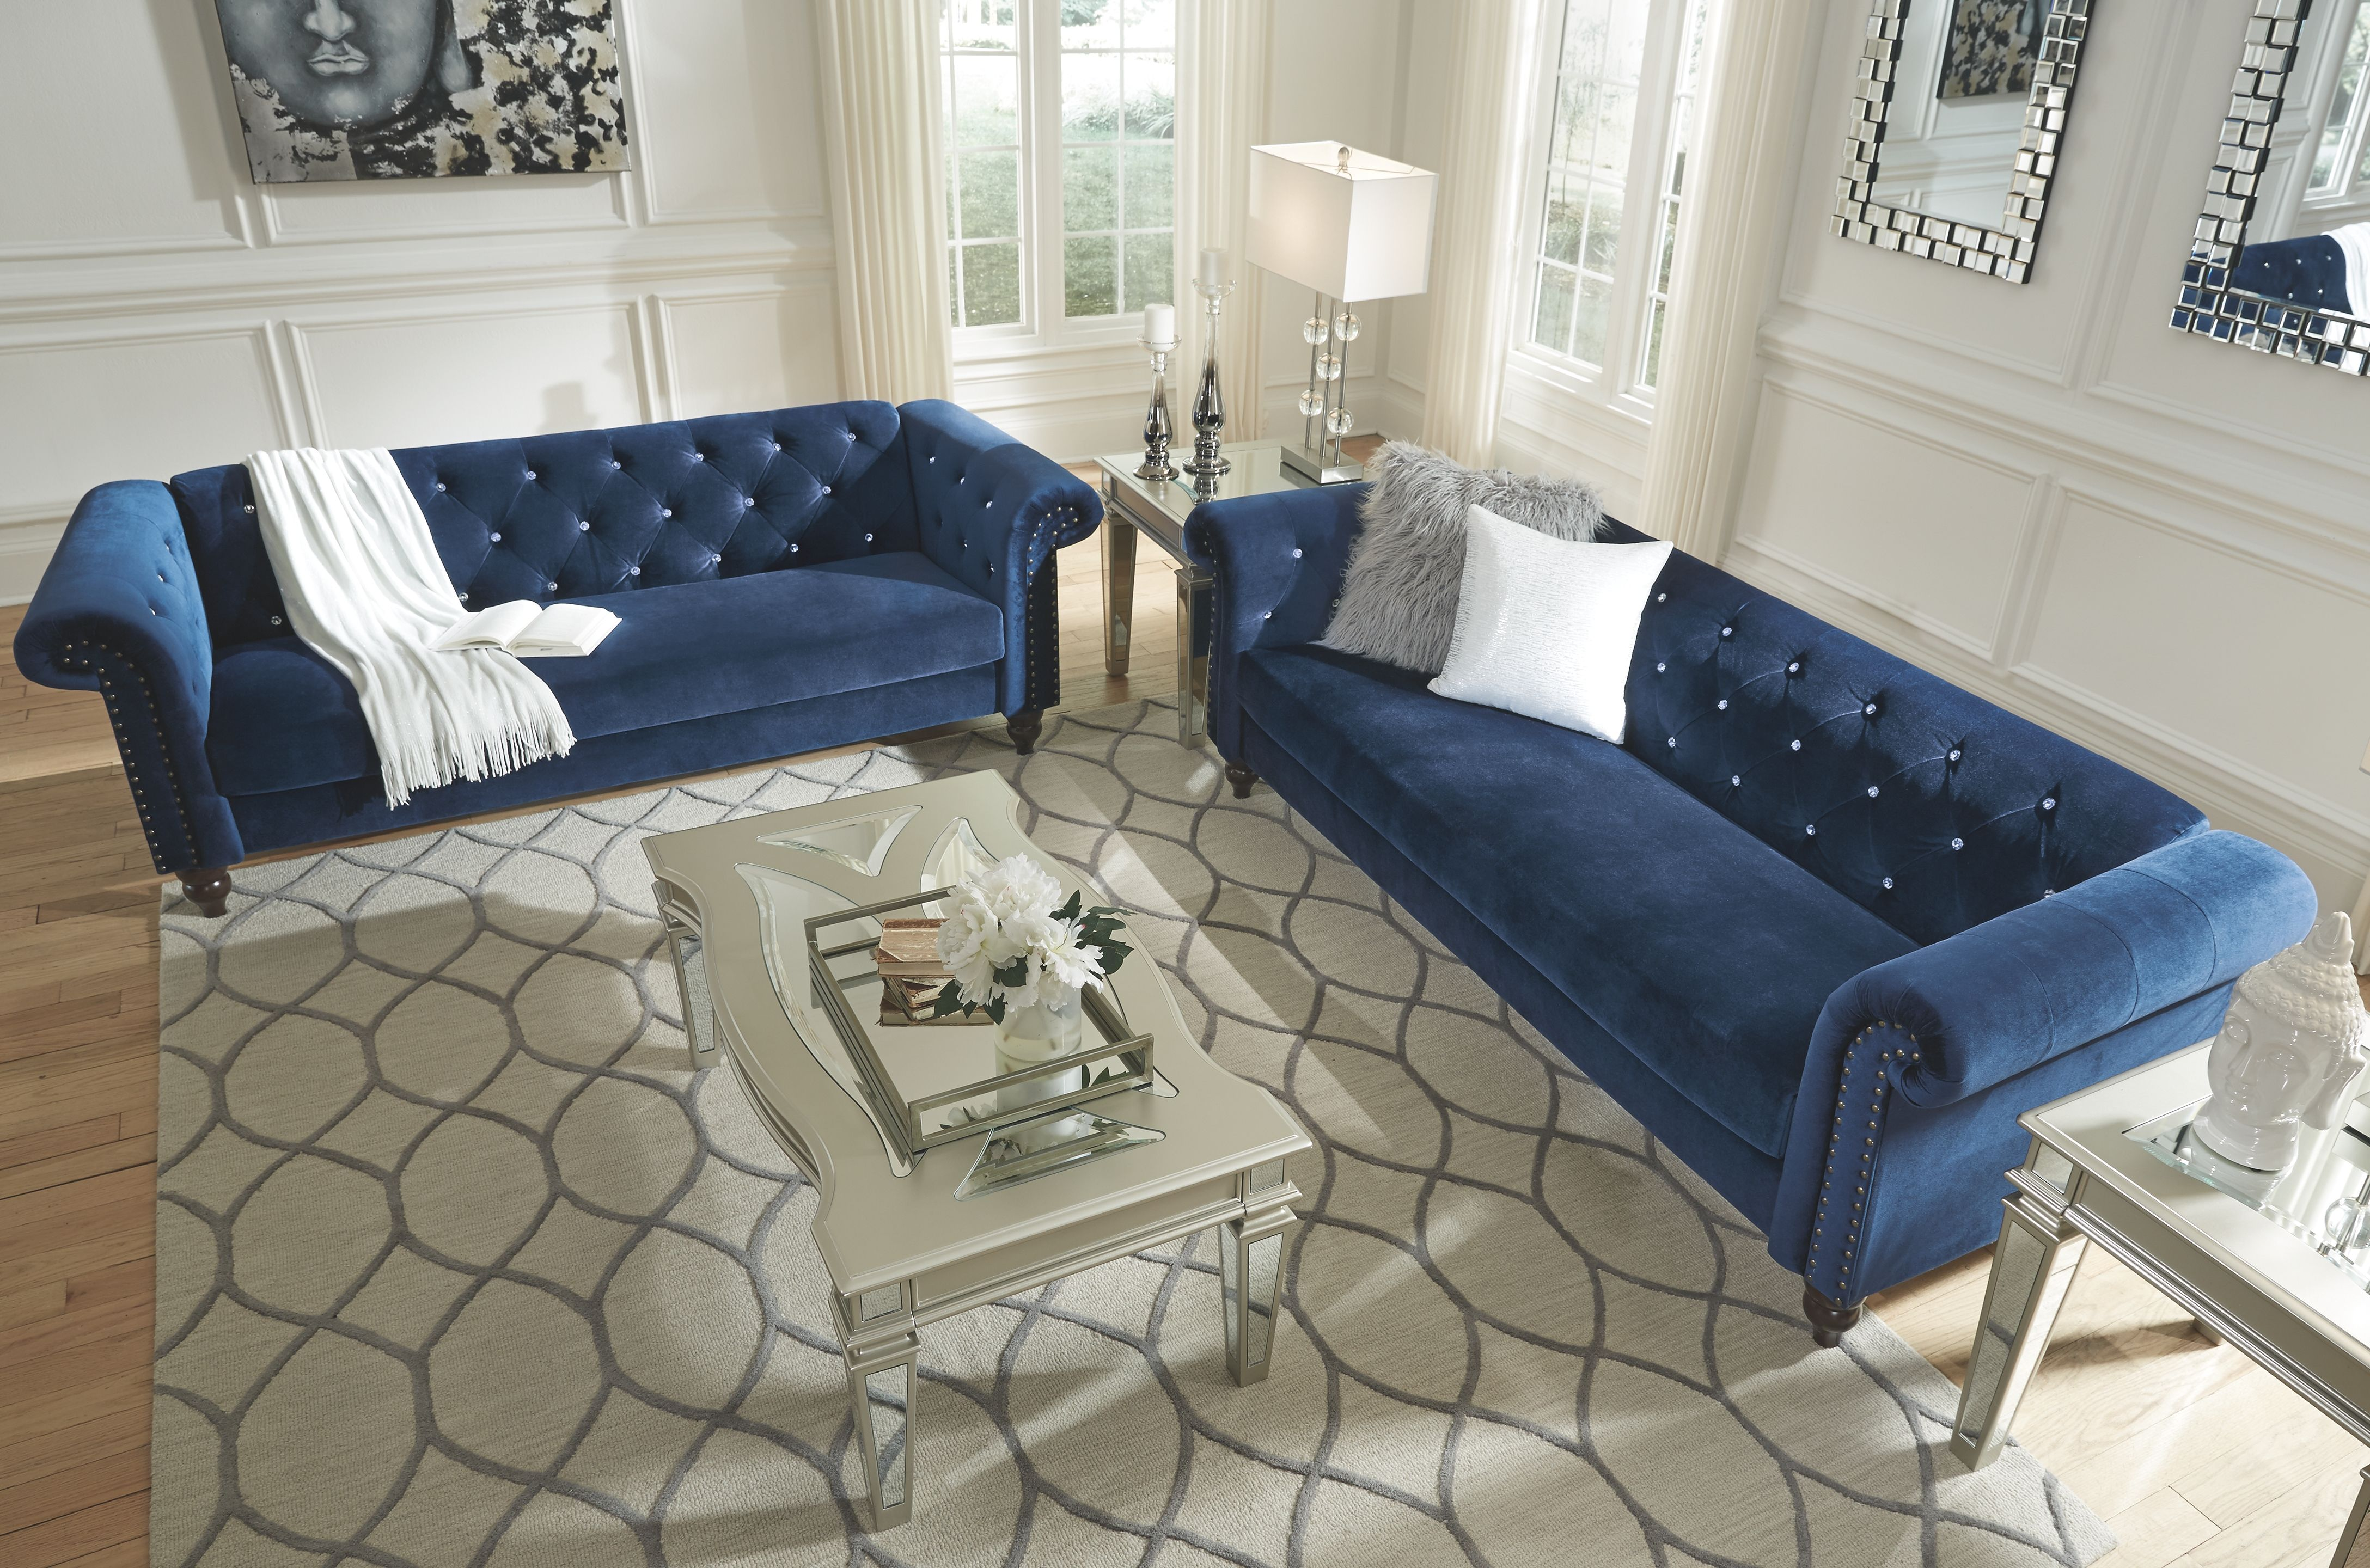 Malchin Sofa and Loveseat Set, Navy | Sofa, loveseat set ...